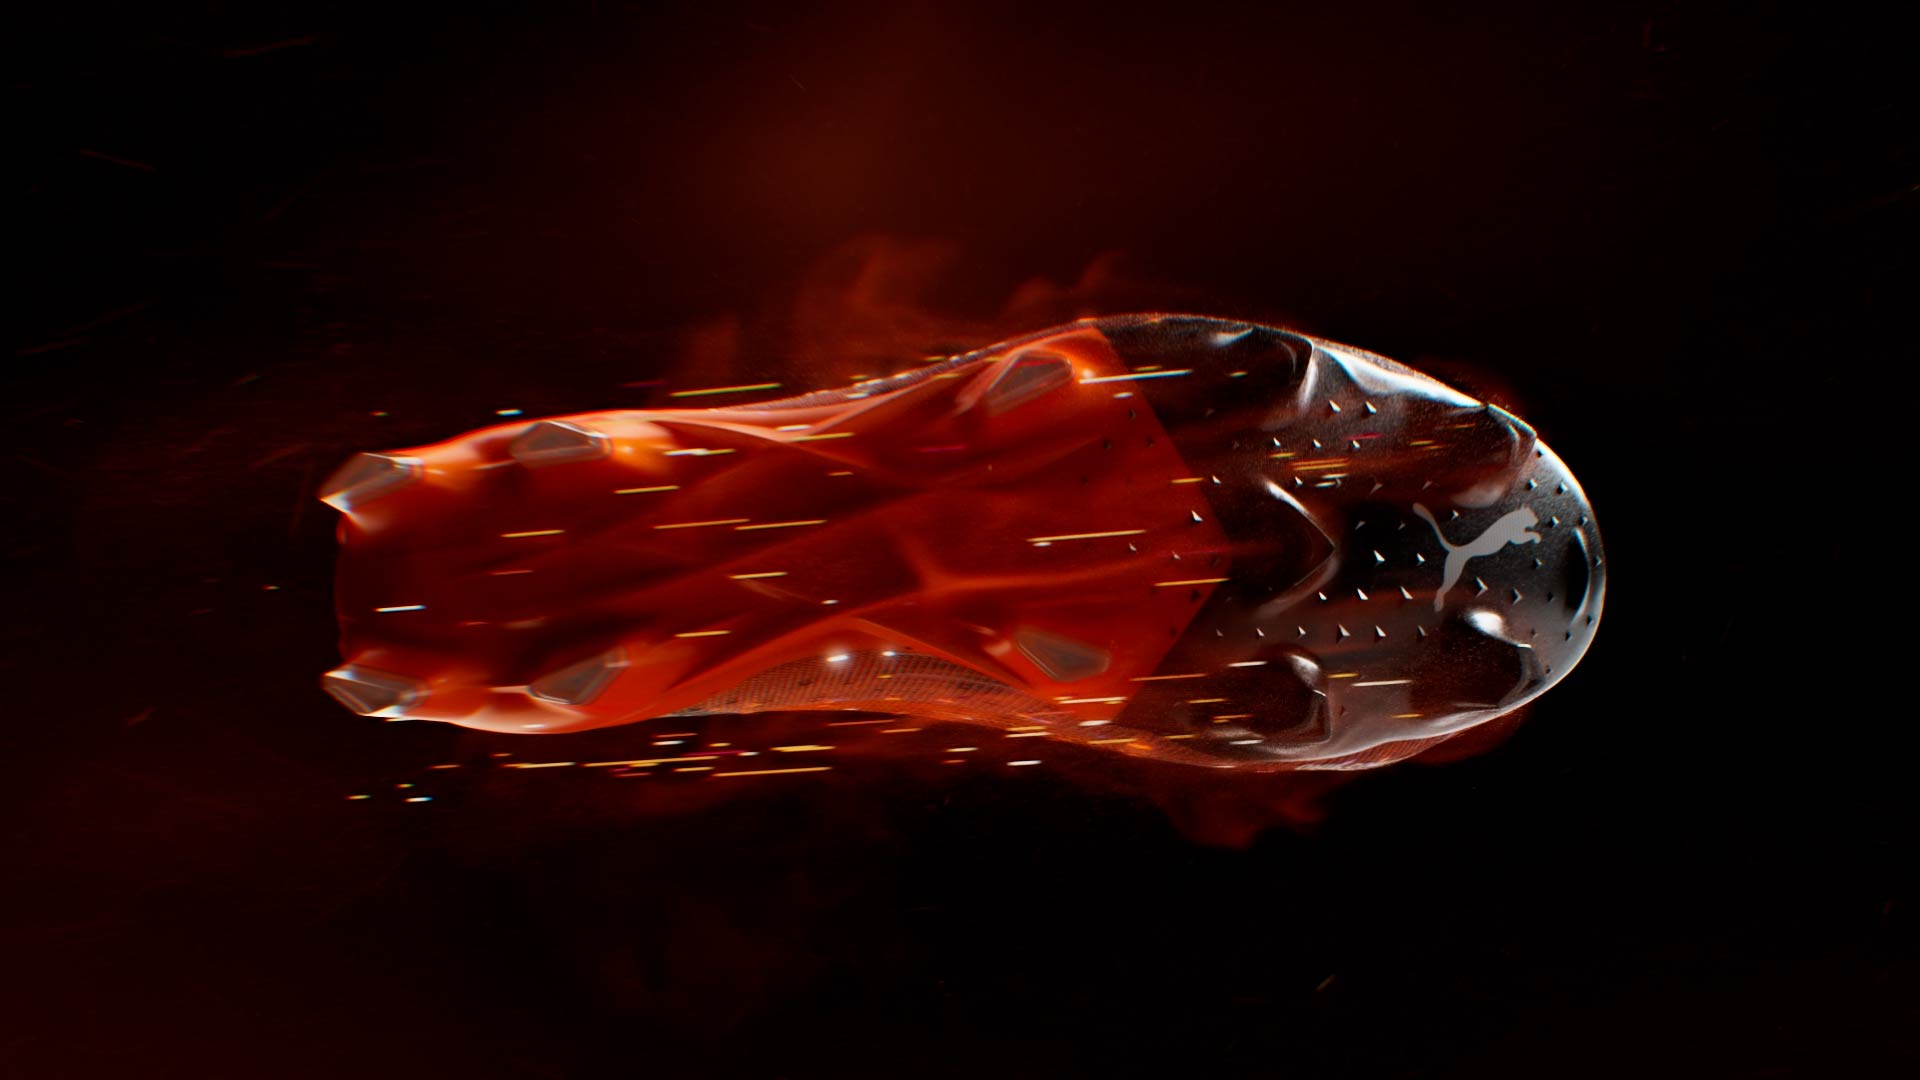 3D smoke simulation and particles on the soccer shoe sole